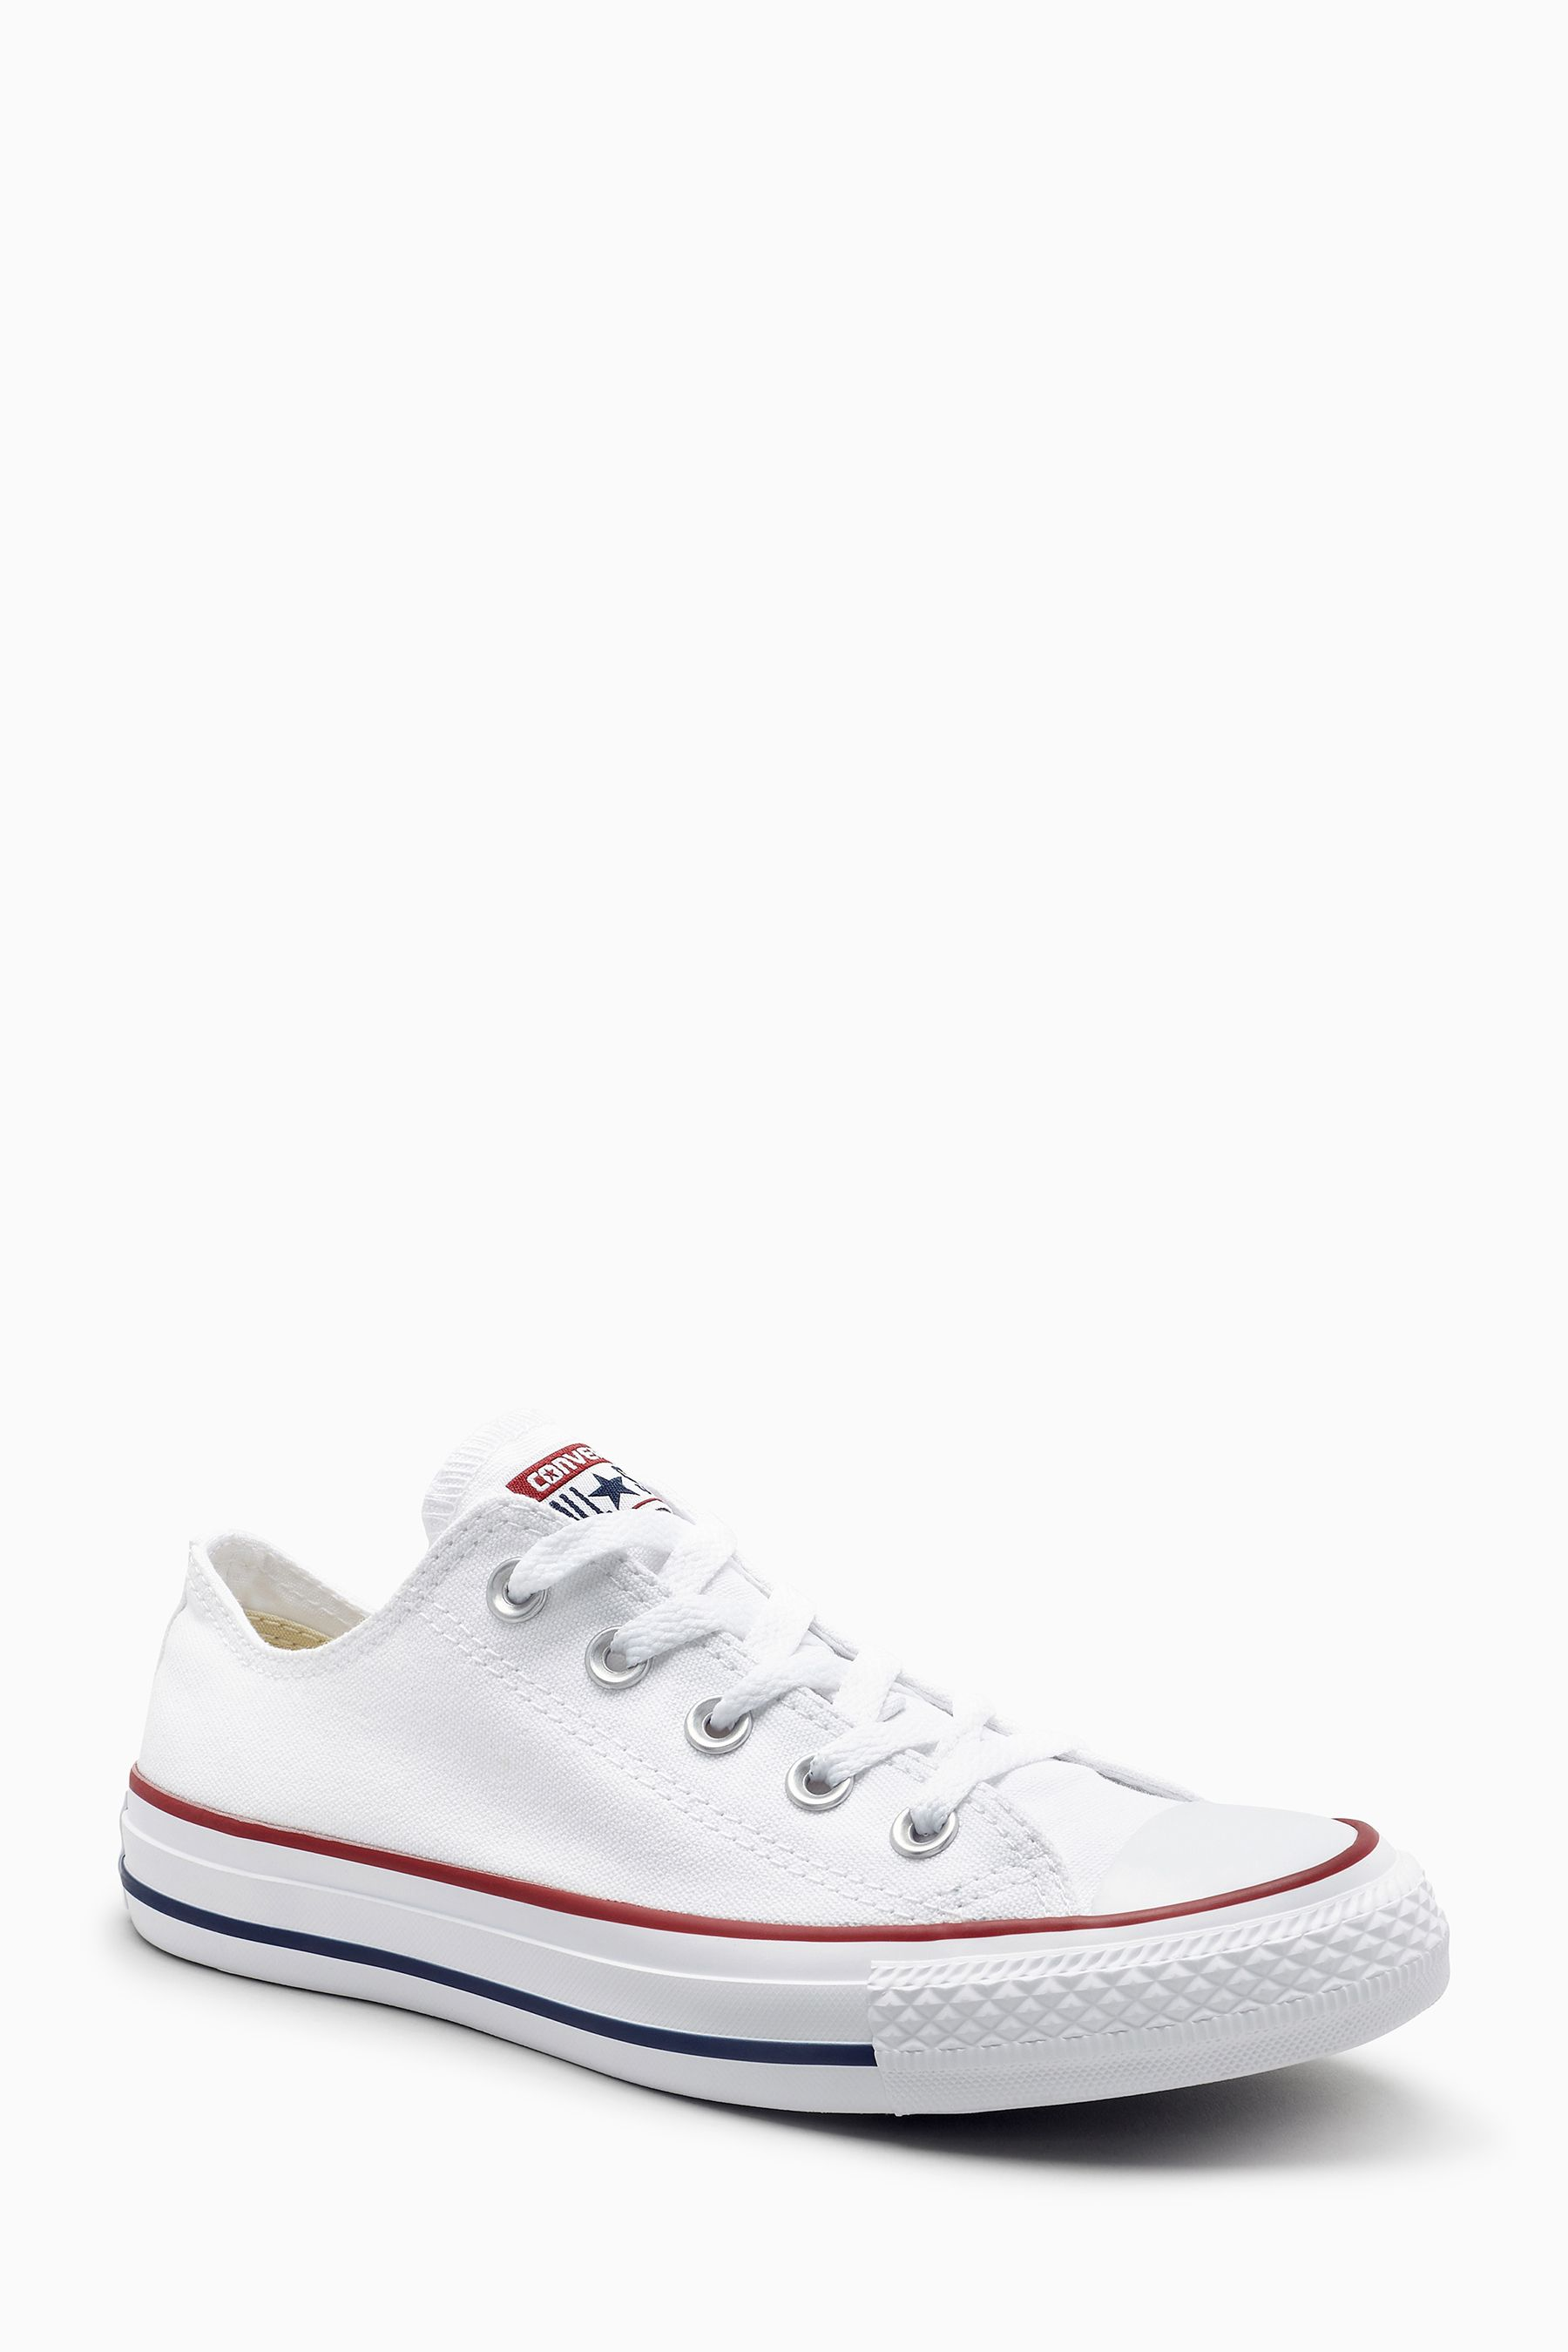 Converse Chuck Taylor All Star Ox Trainers | Products in